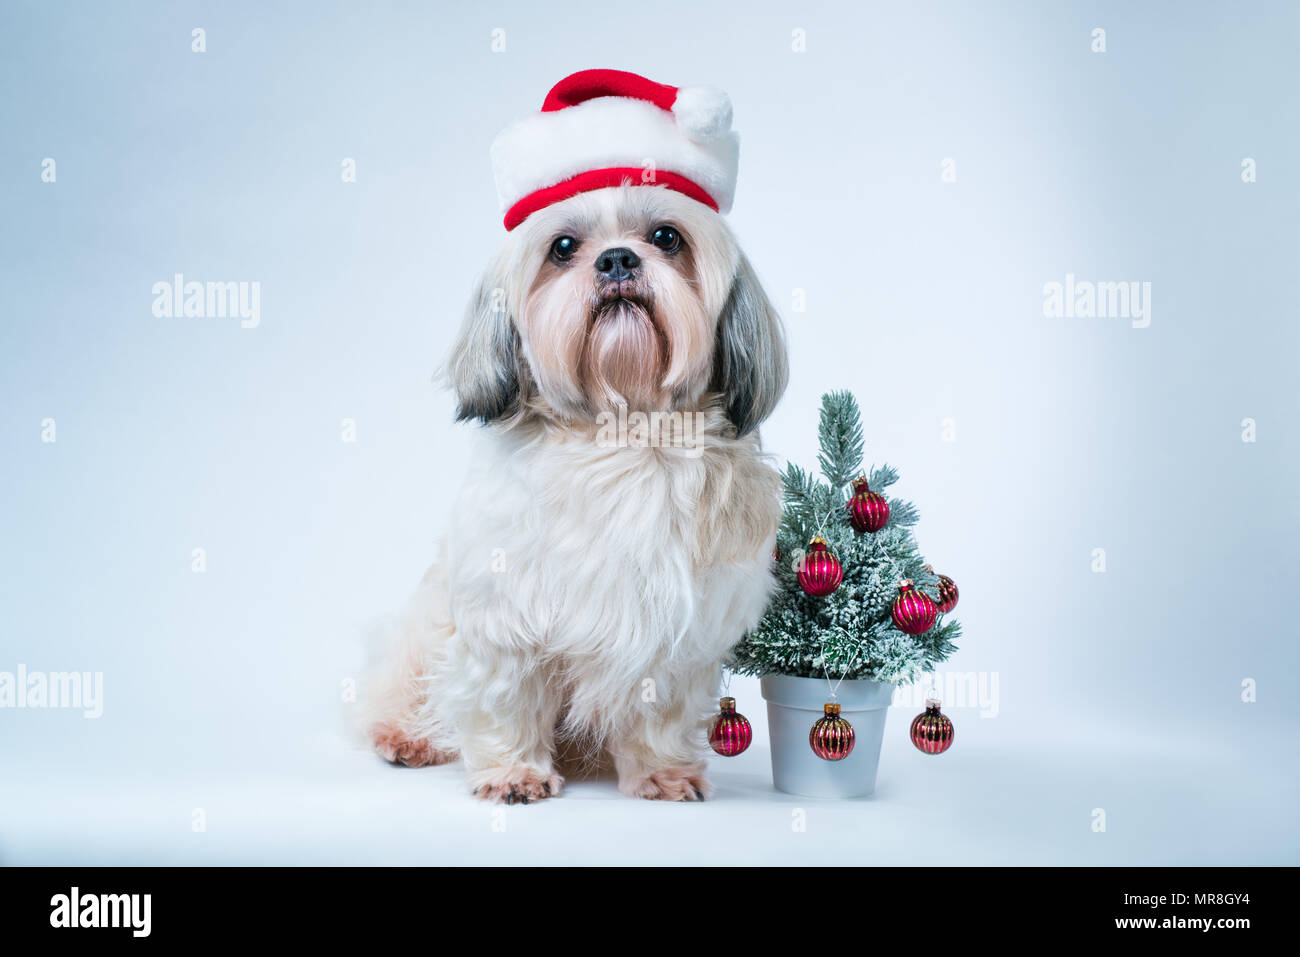 Shih Tzu Dog In Santa Hat With Small New Year Tree On White And Blue